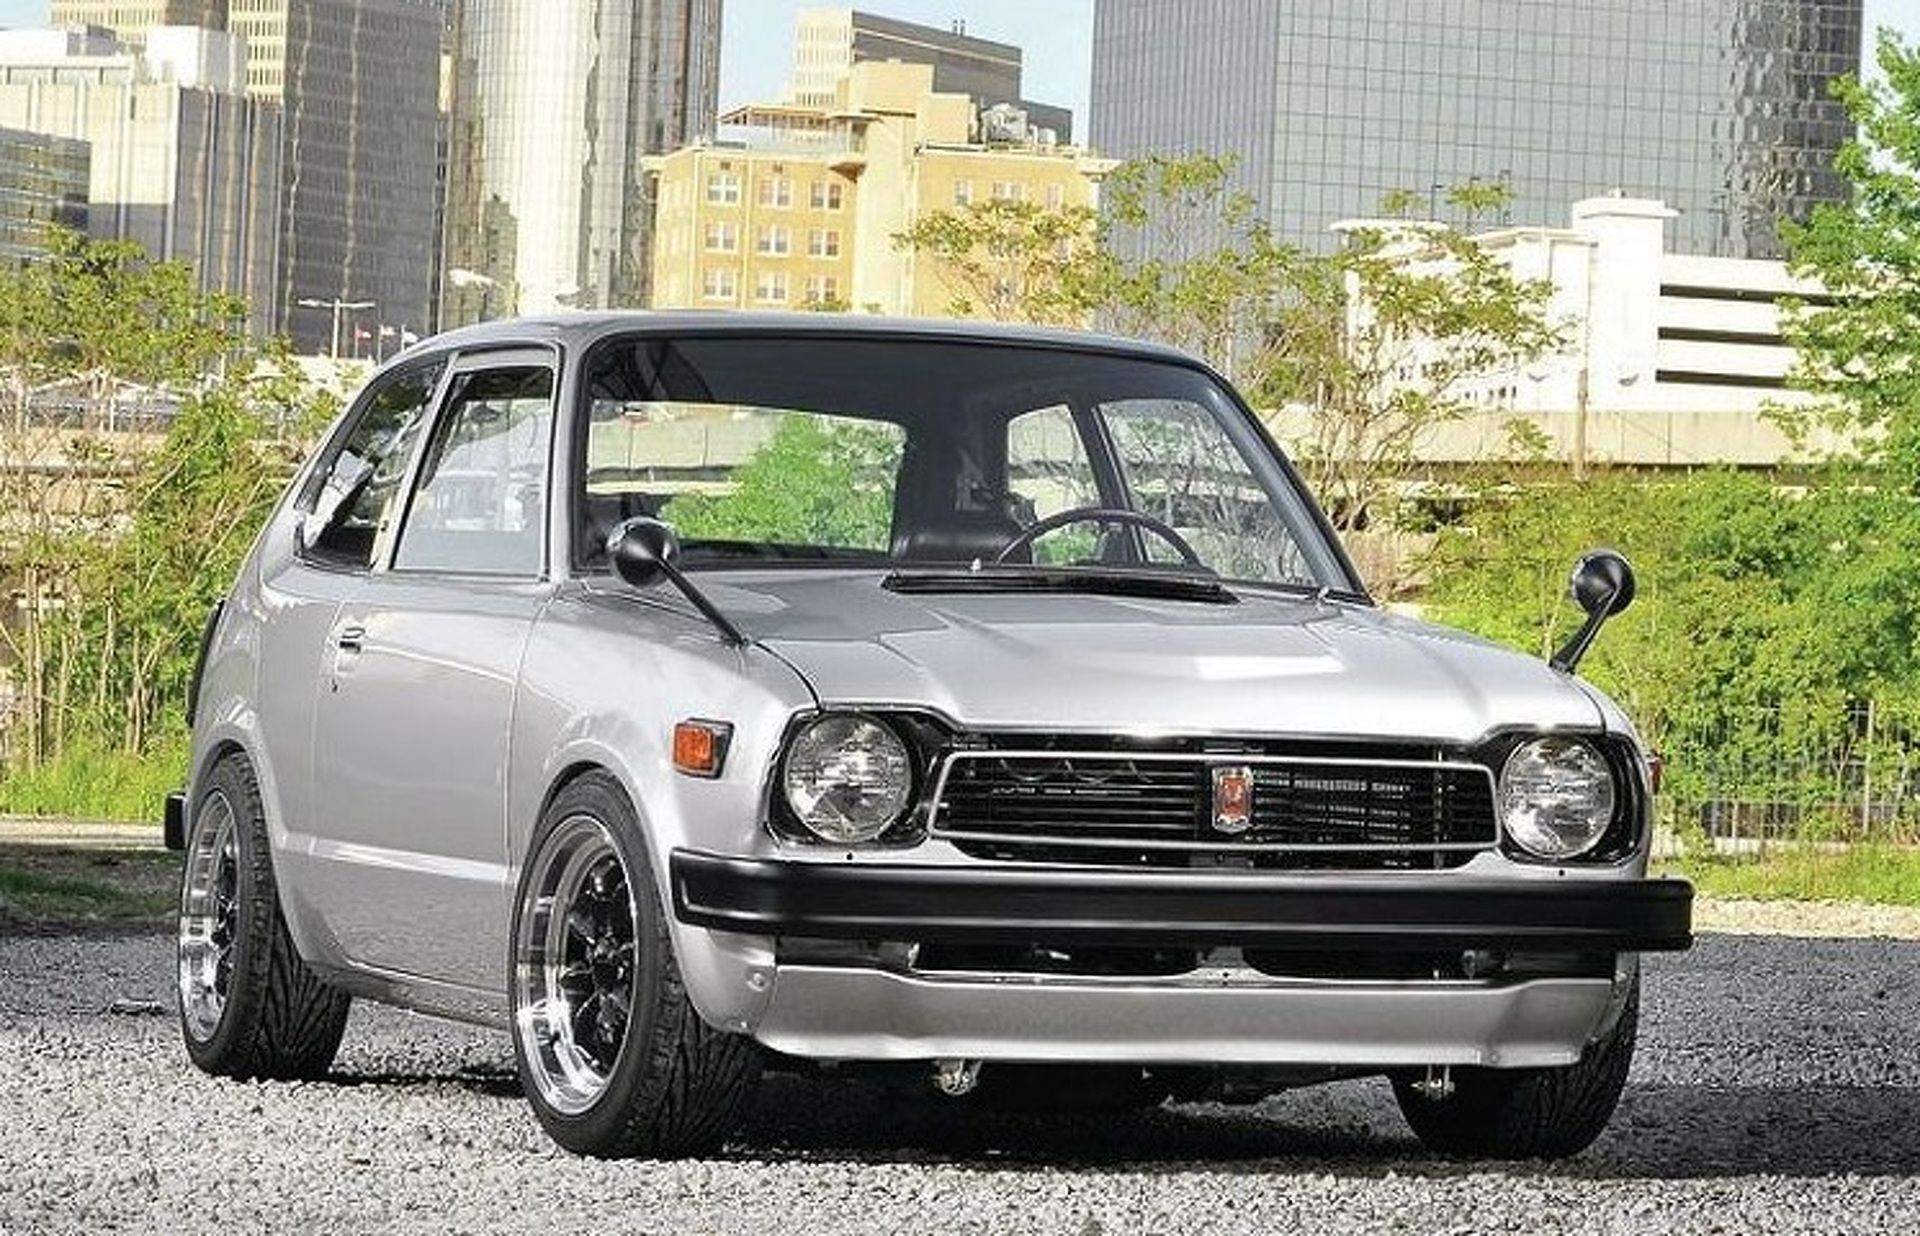 Home by year 1979 cars 1979 trucks car pictures - This Car Started Its Life As A Humble 1979 Honda Civic But A Six Year Build Has Turned It Into A Demon Of A Car It Now Sports A Honda Twin Cam That